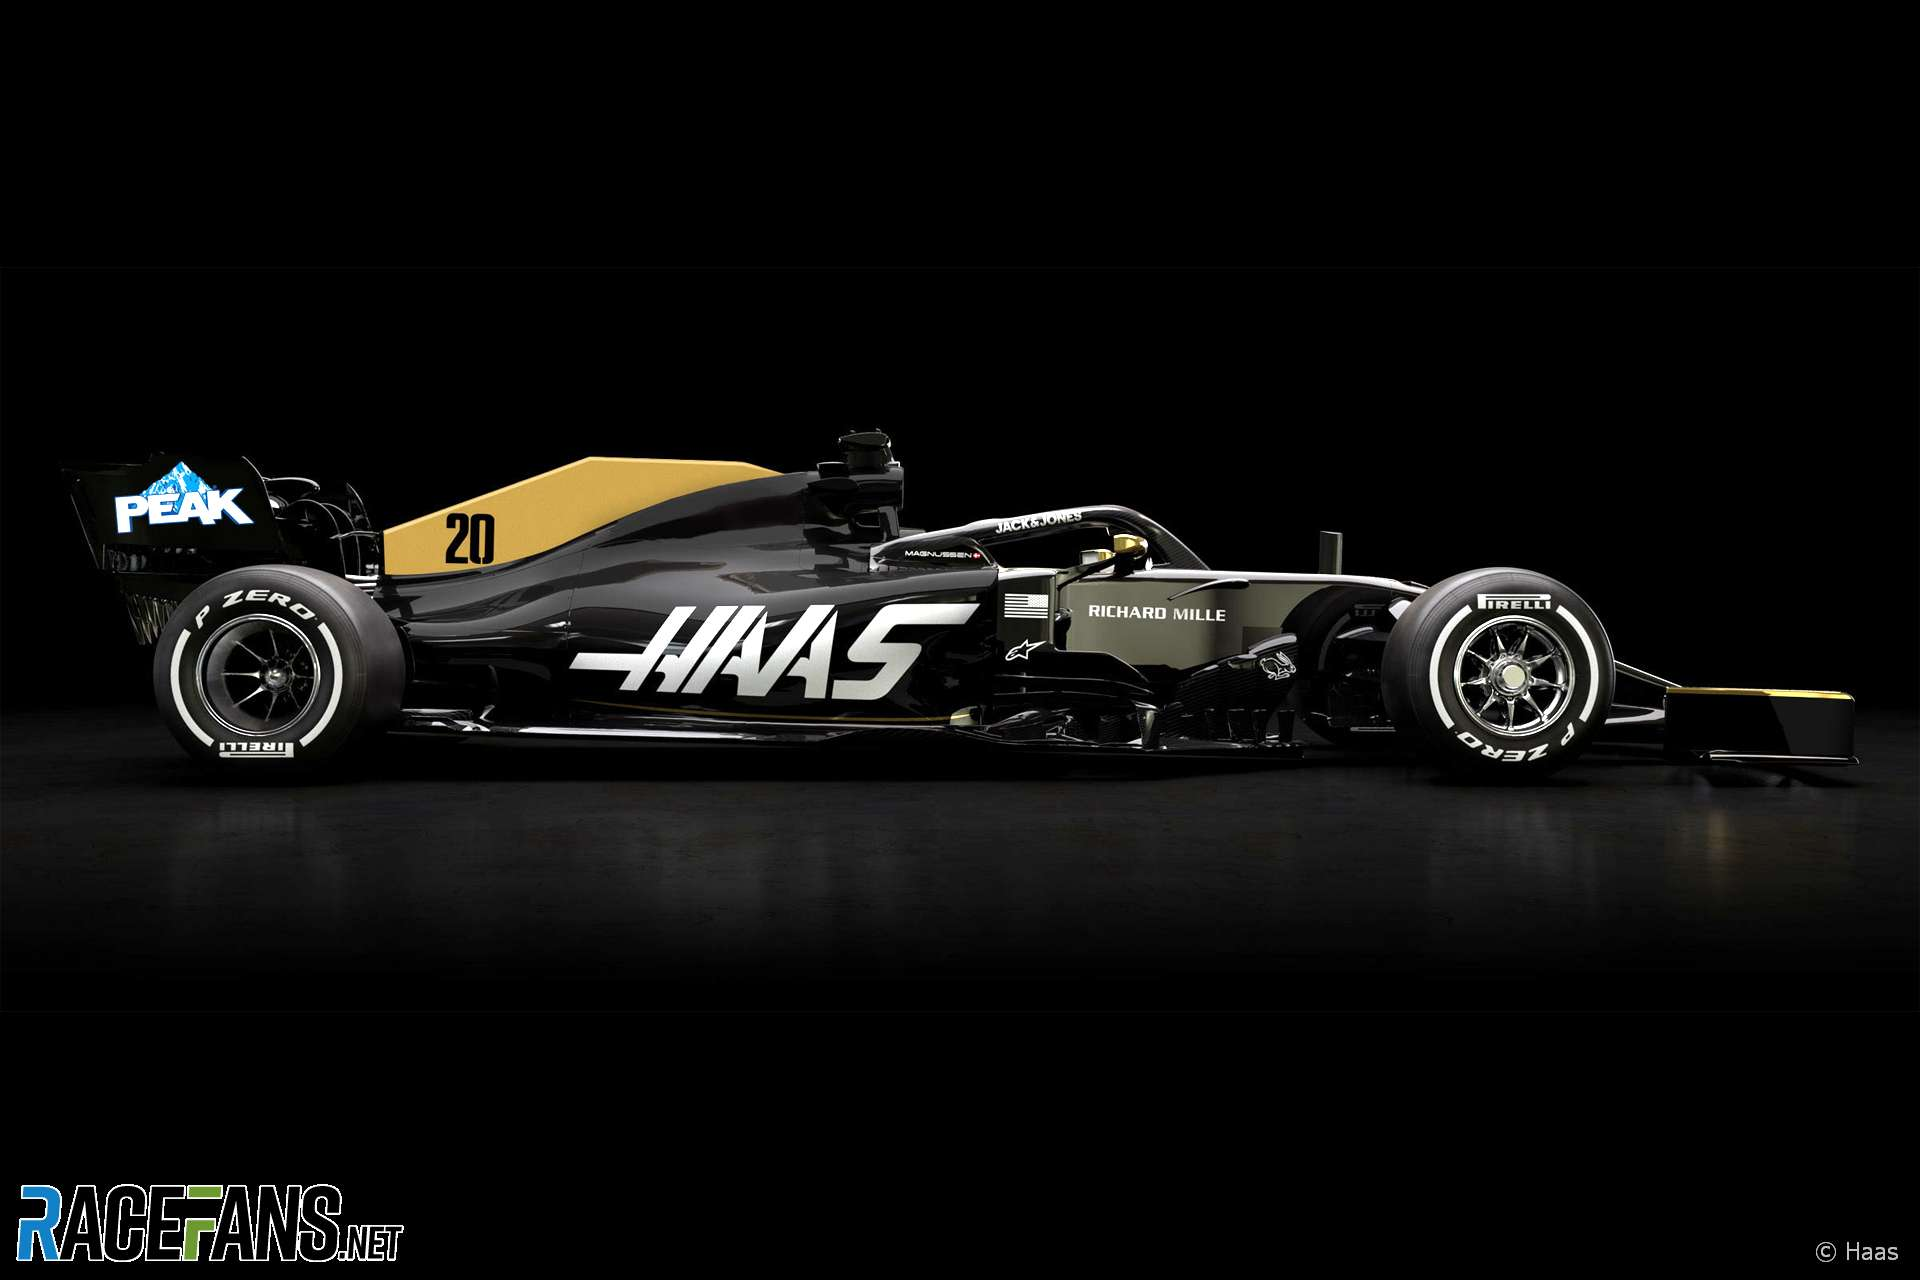 F1 Haas Reveals First Image Of Car Without Rich Energy Branding